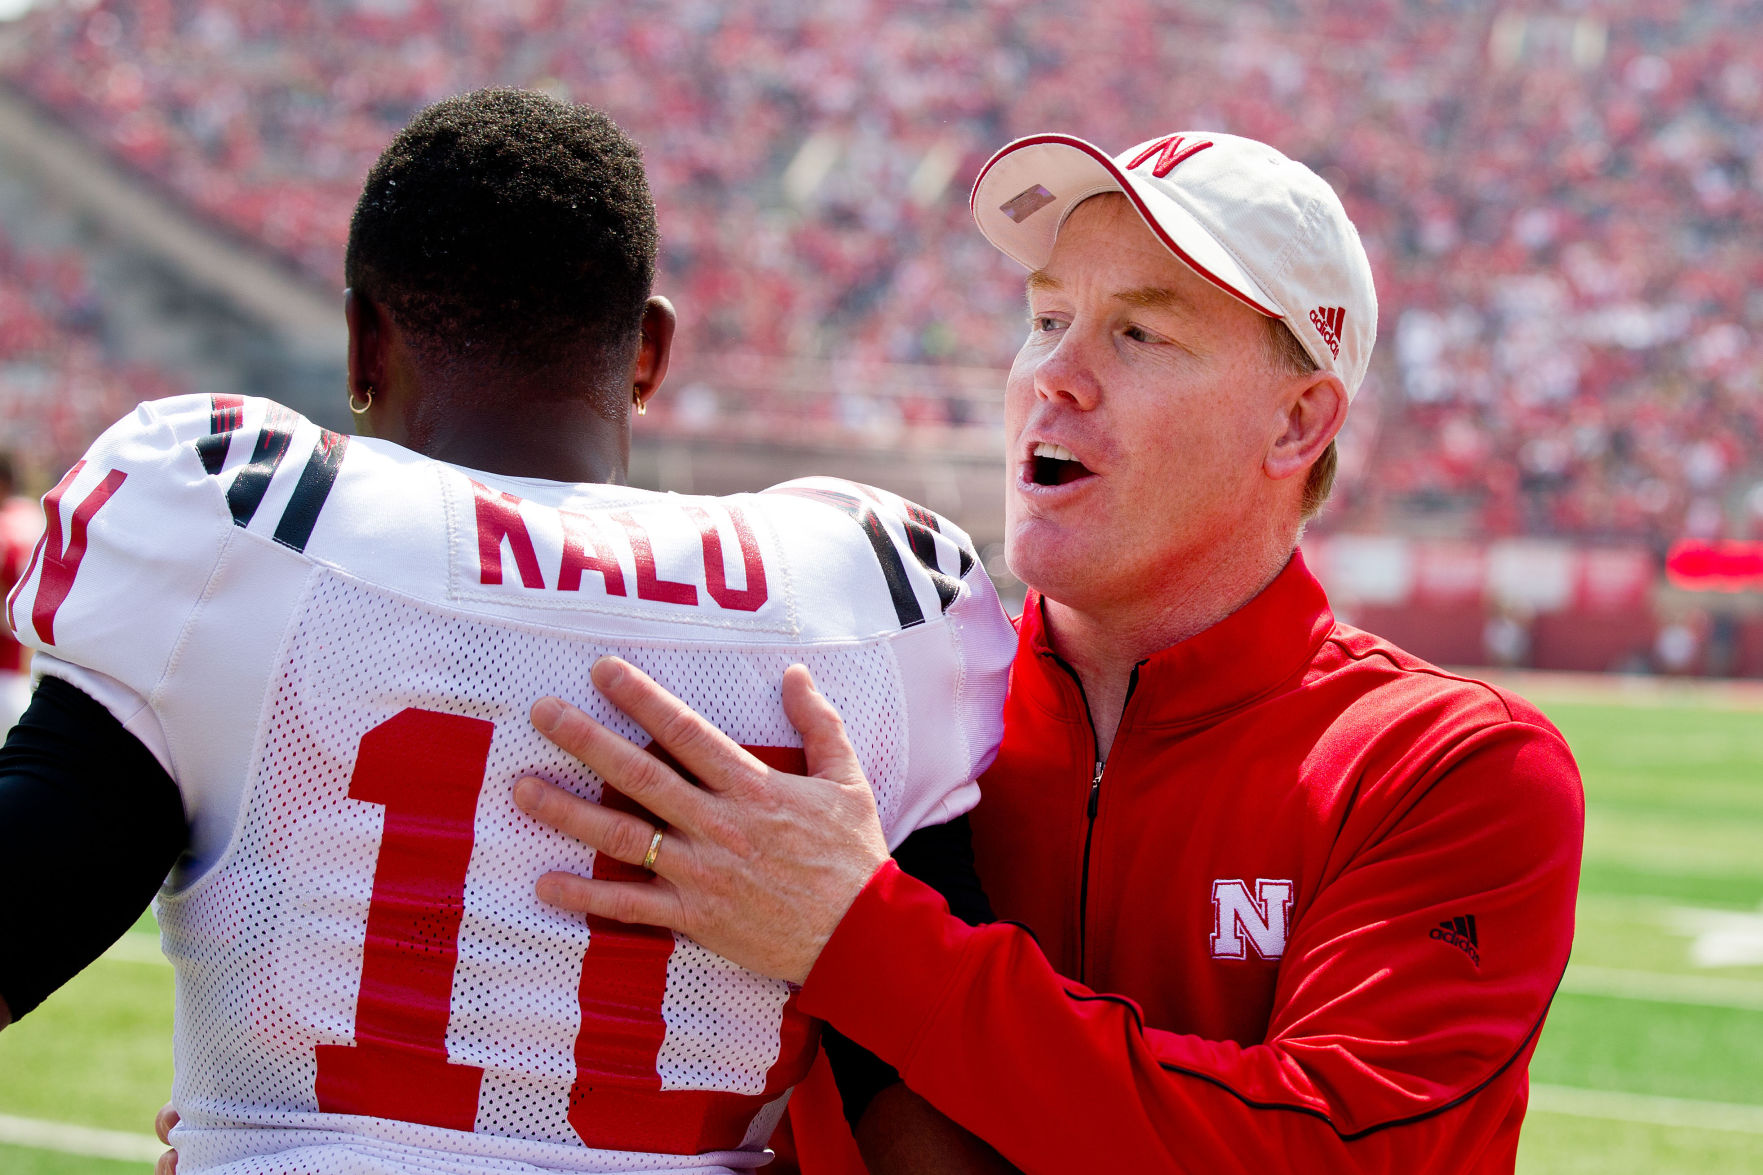 Nebraska's Mike Riley on AD firing: 'I was flat-out saddened'